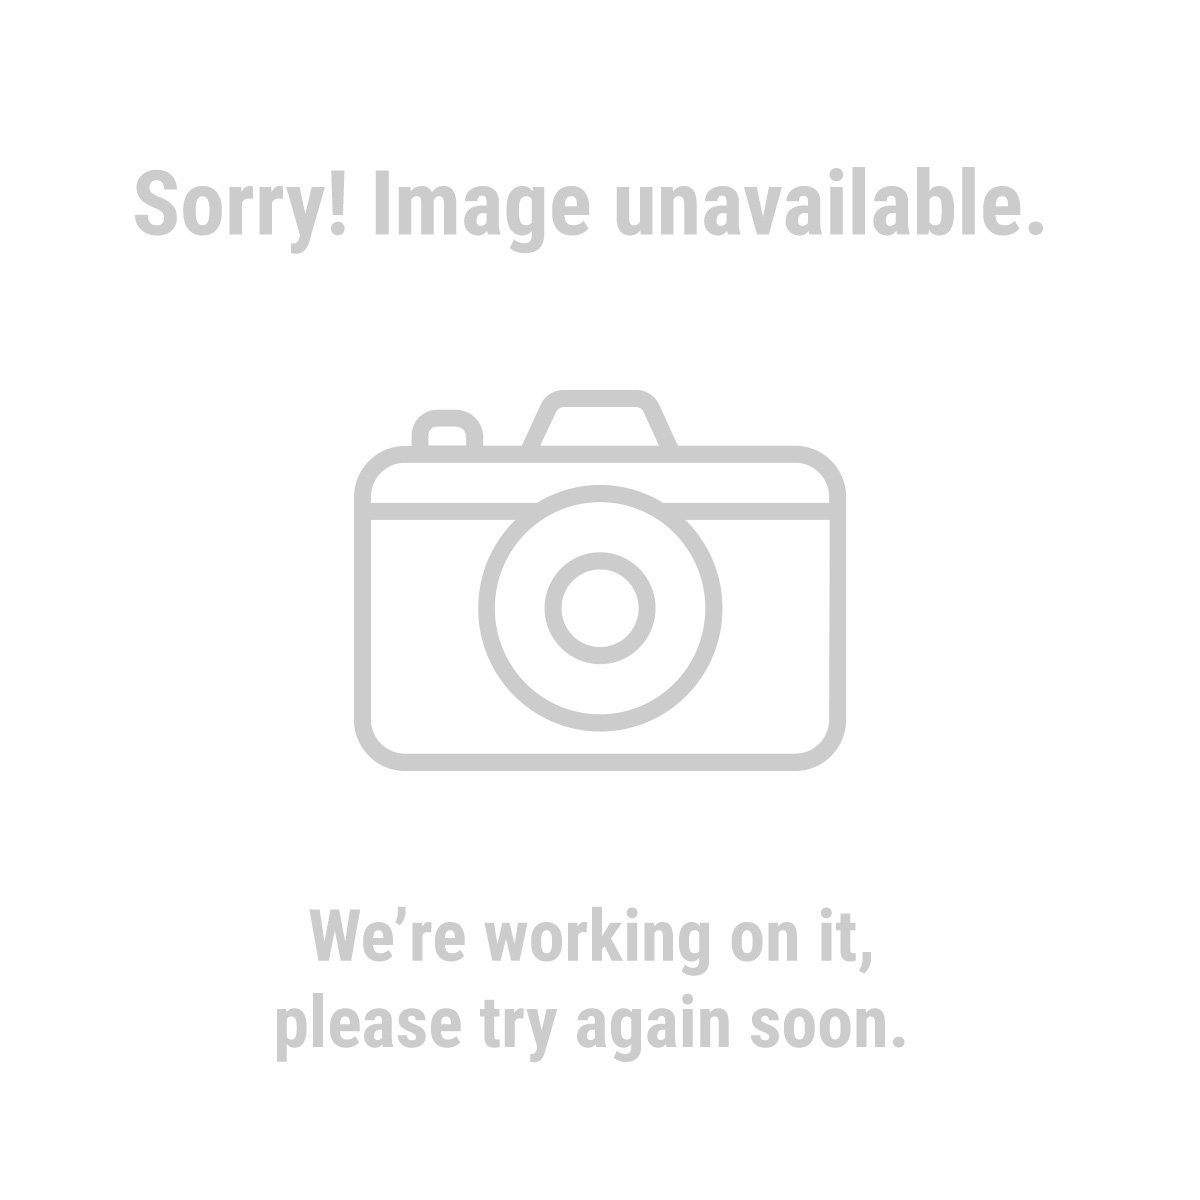 HFT 1123 10 Rolls 43-1/3 ft. x 1/2 in. Plumber's  Thread Seal Tape